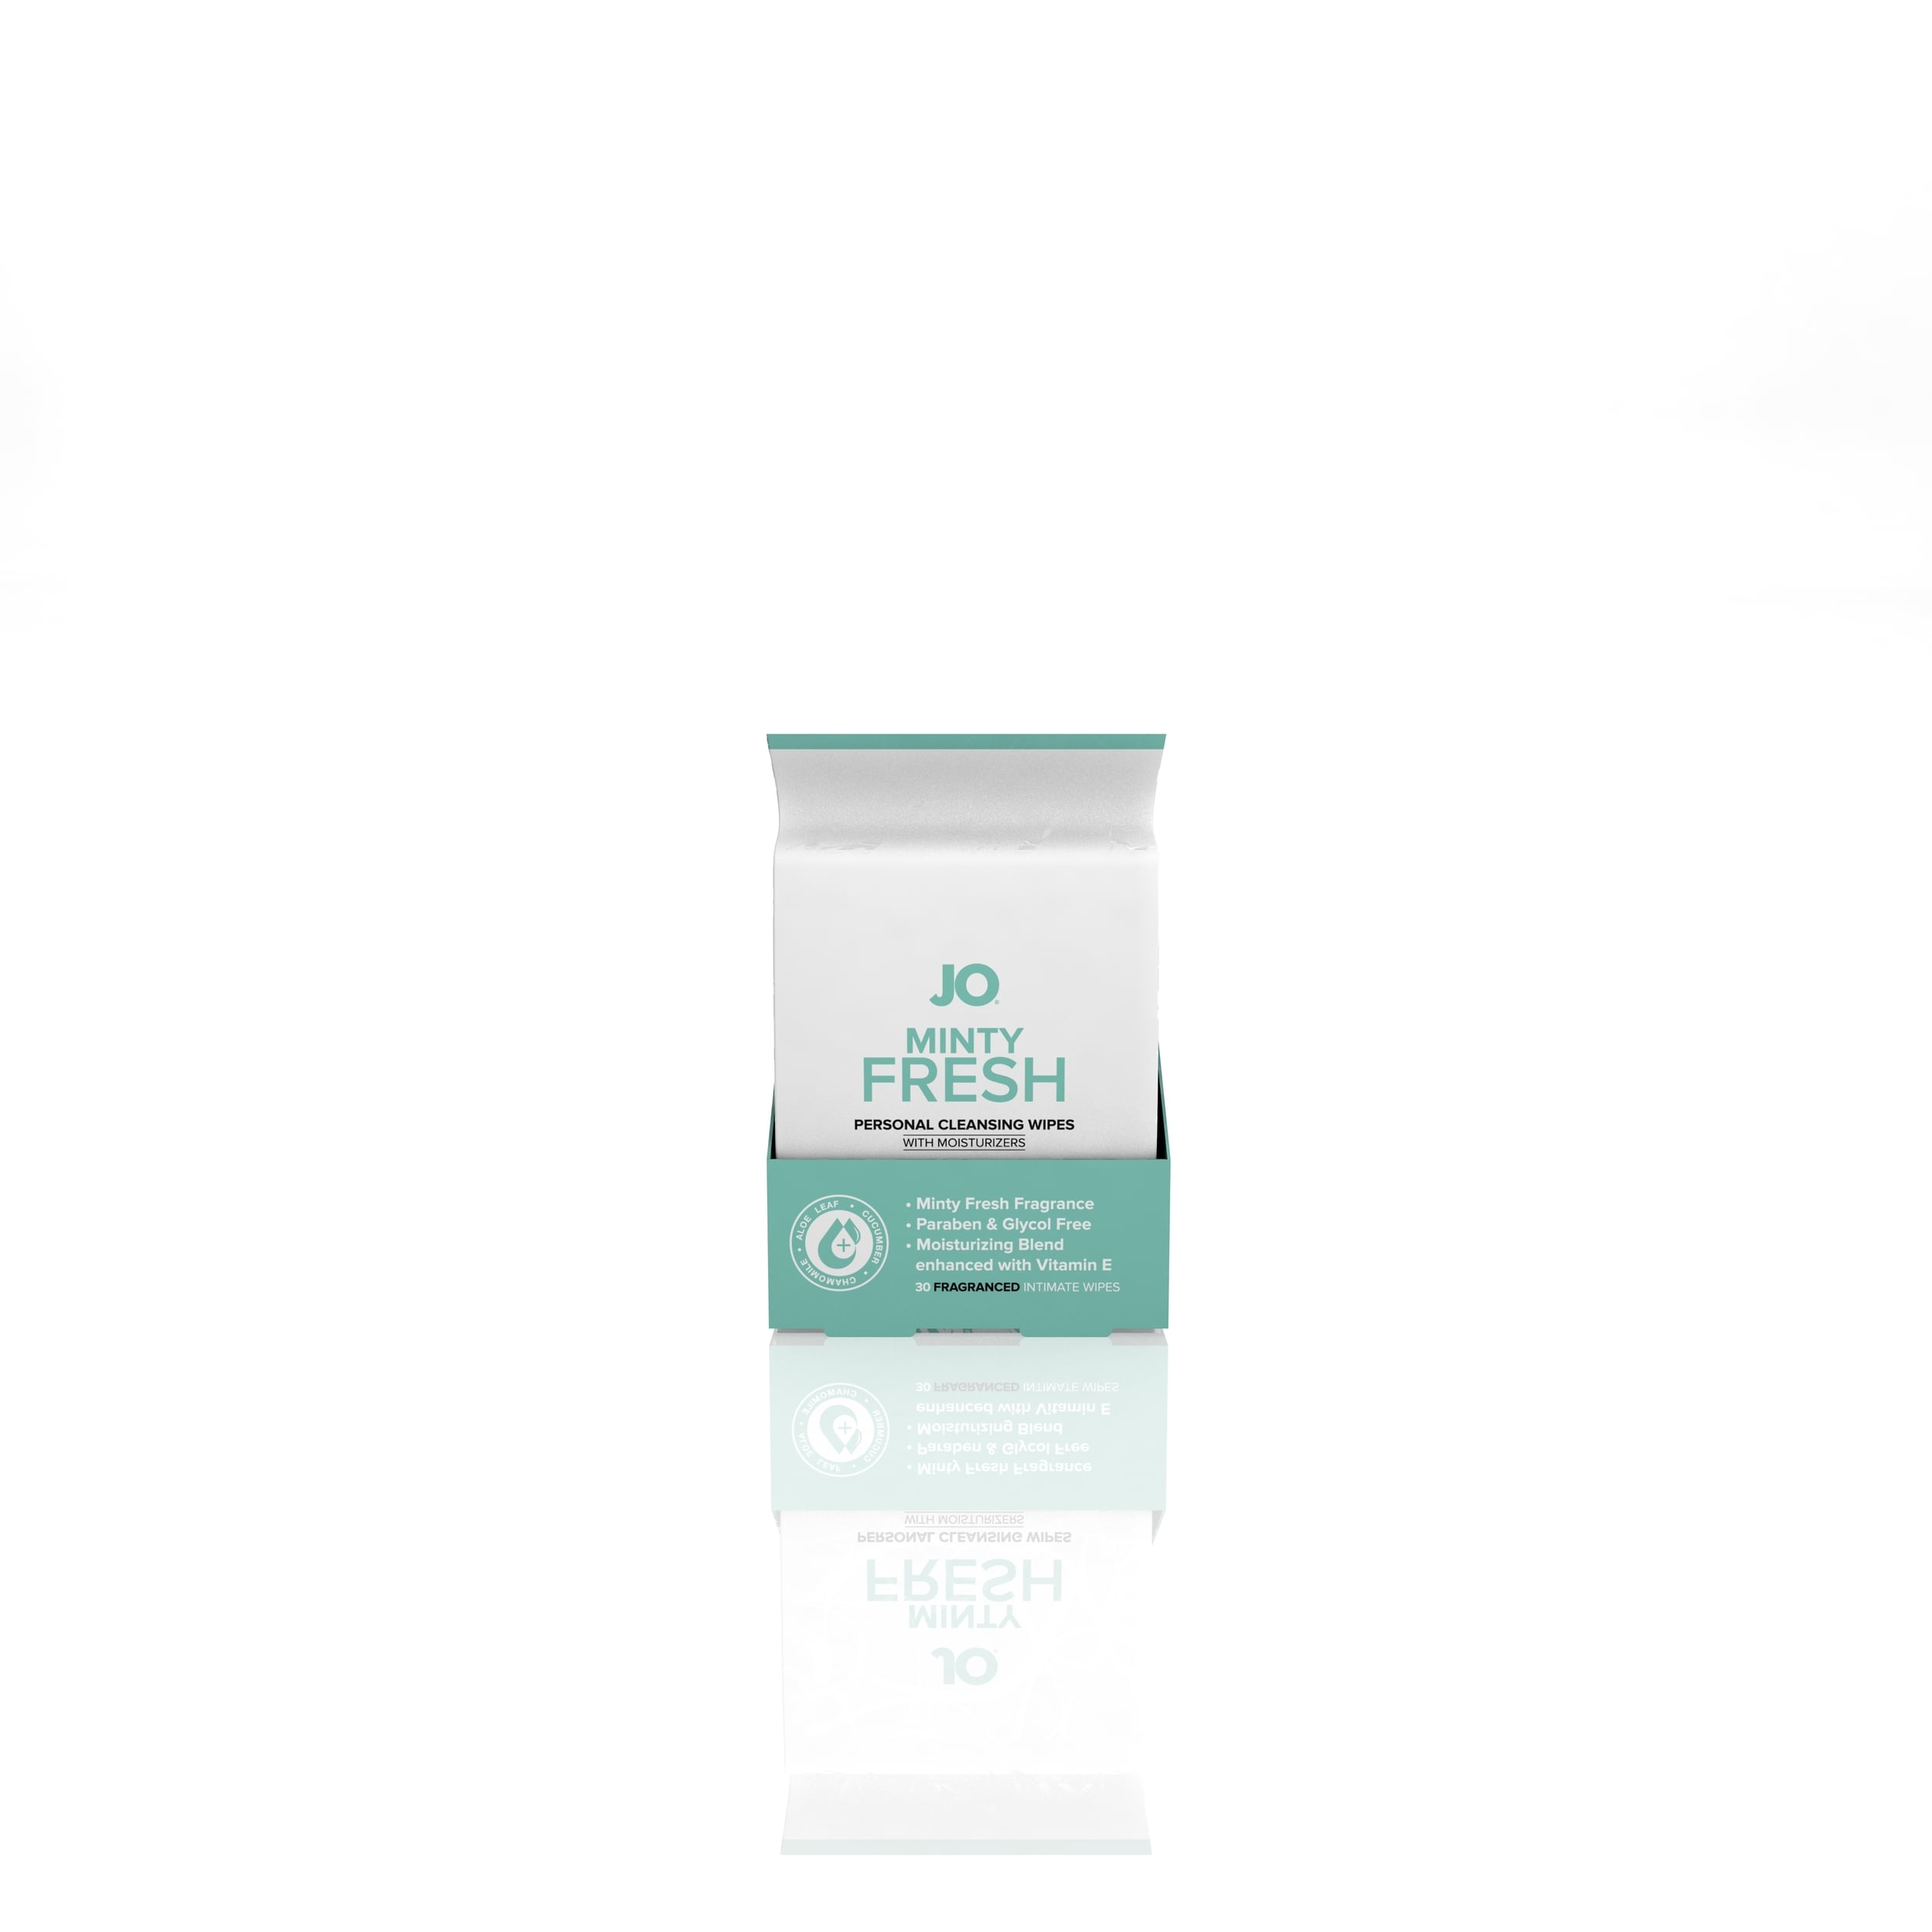 30565 - JO PERSONAL CLEANSING WIPES - MINTY FRESH - 30 pack.jpg